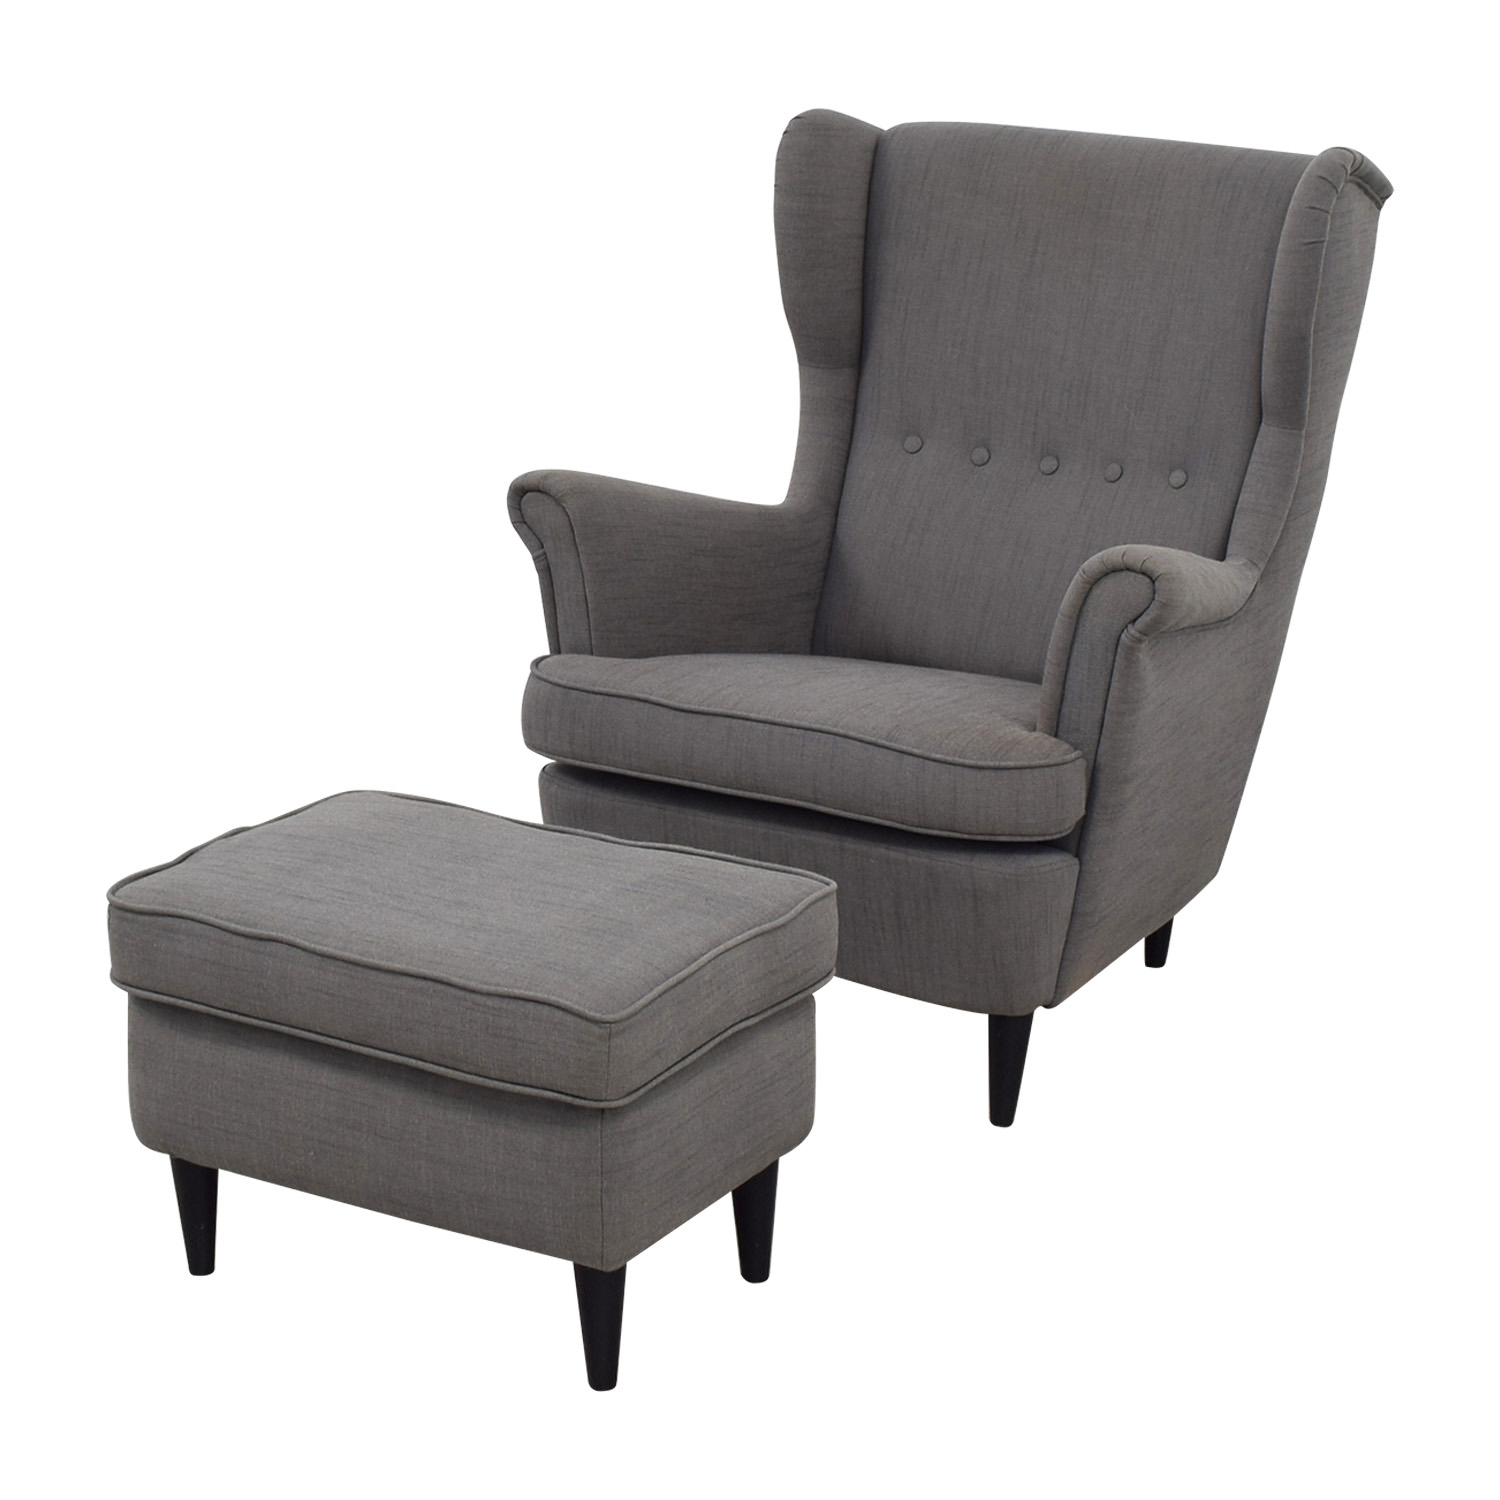 Used Wingback Chairs Wingback Chair Ikea Frasesdeconquista